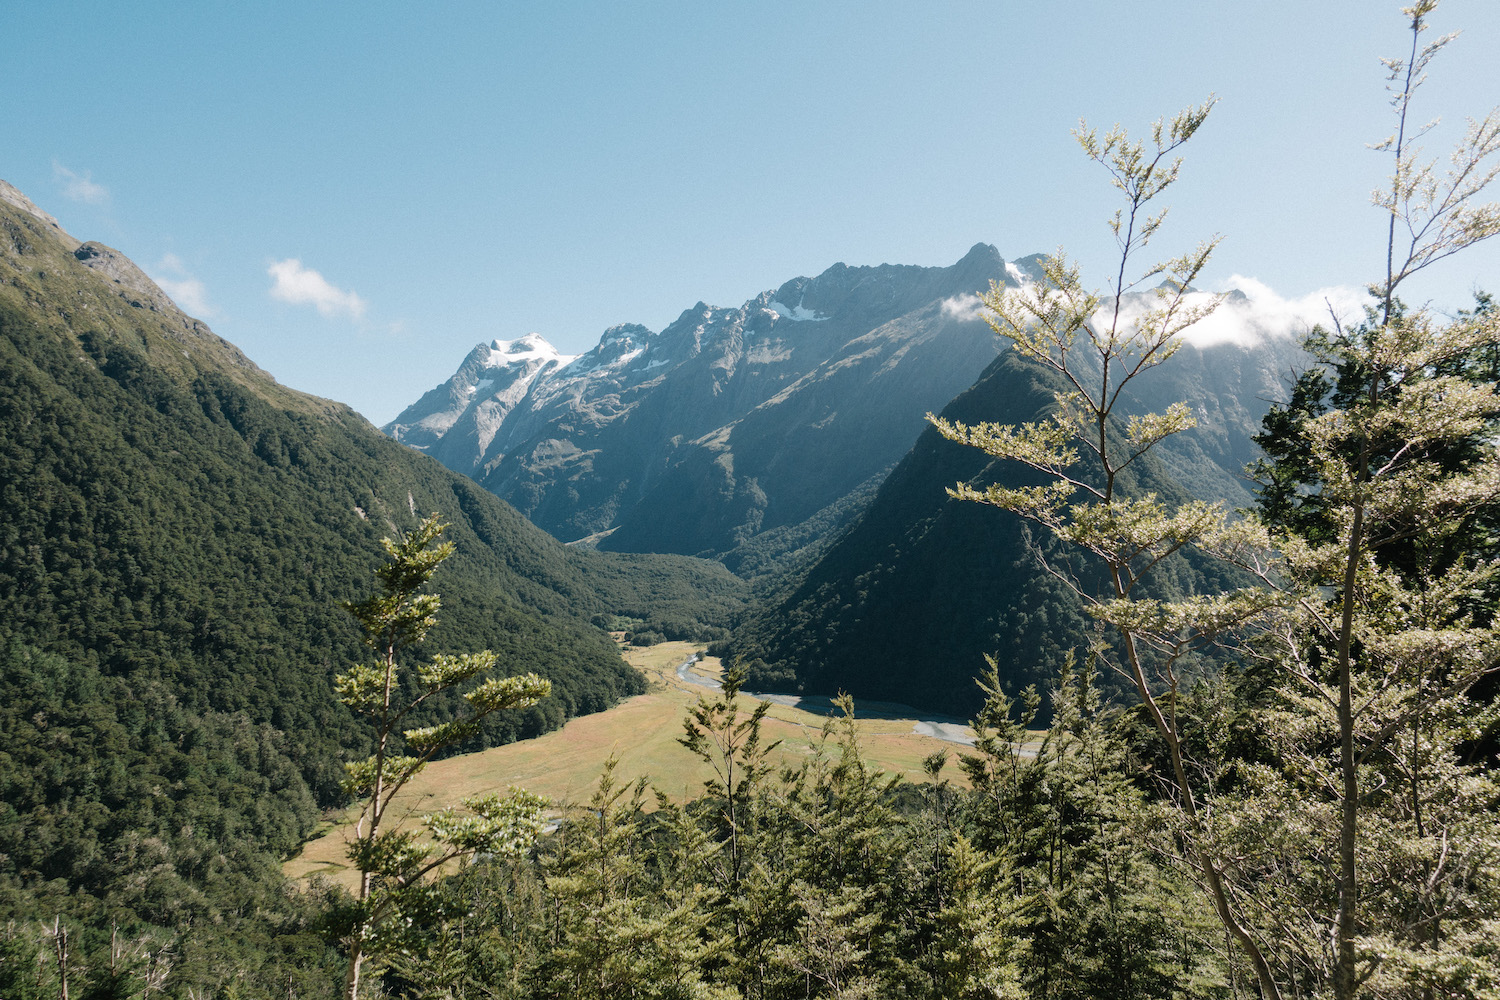 20180207_NewZealand_075012-Nick-Bedford,-Photographer-Hiking, Mountains, New Zealand, Routeburn Track, Sony RX100V, Southern Alps, Tramping, VSCO Film.jpg